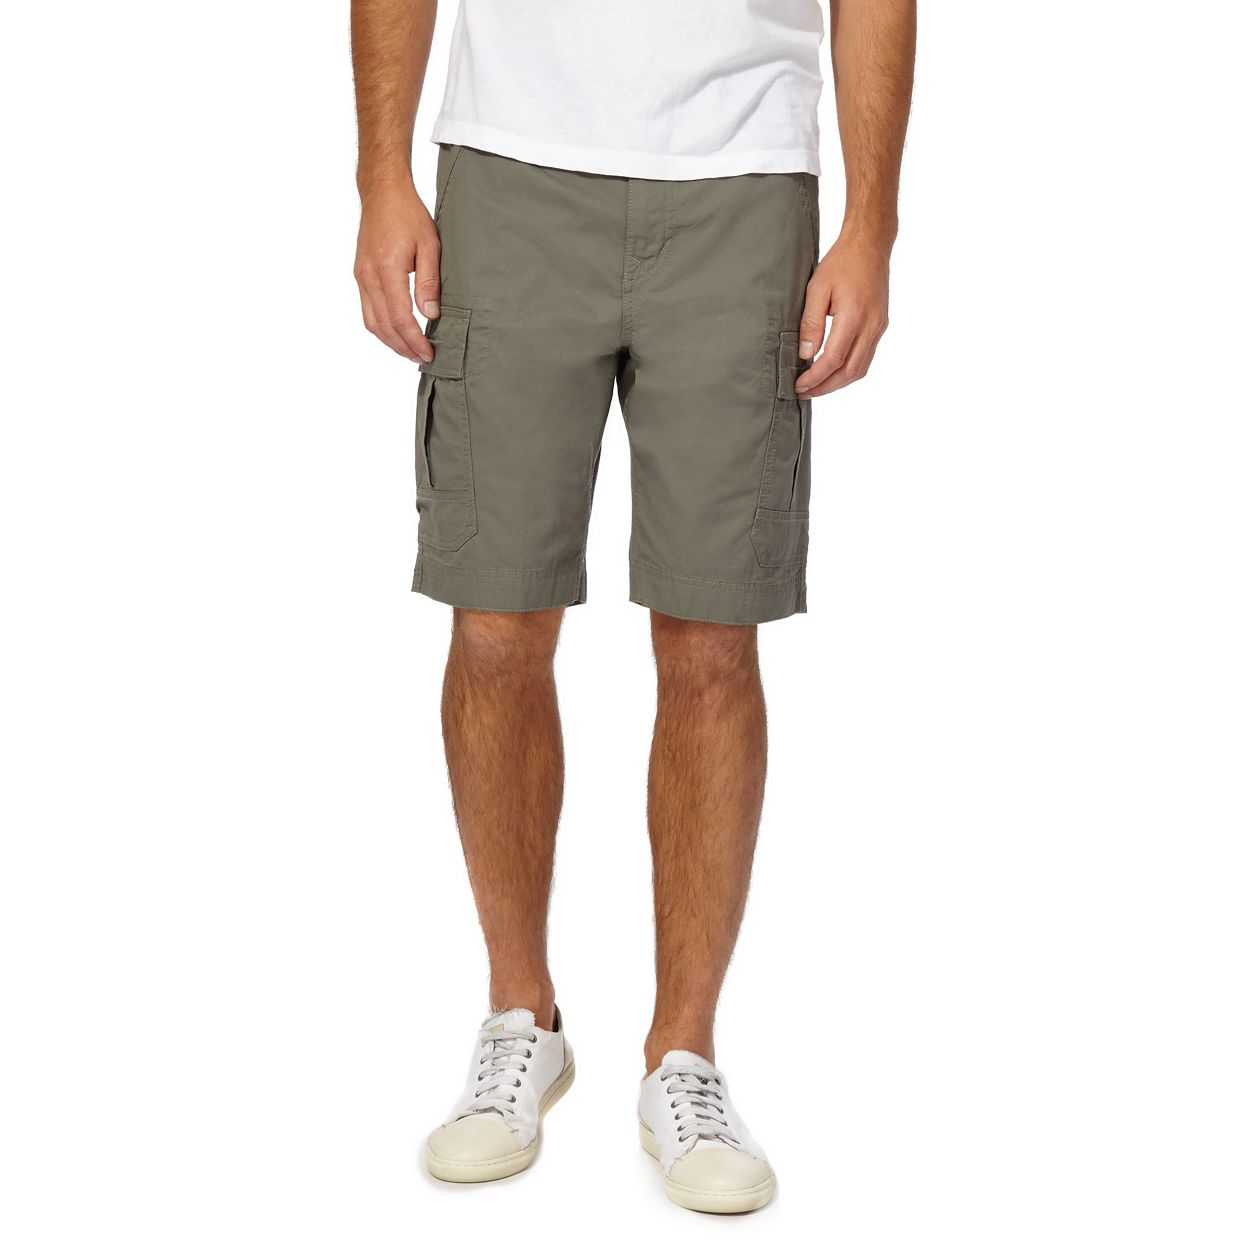 Red Herring Khaki Big and tall khaki cargo shorts